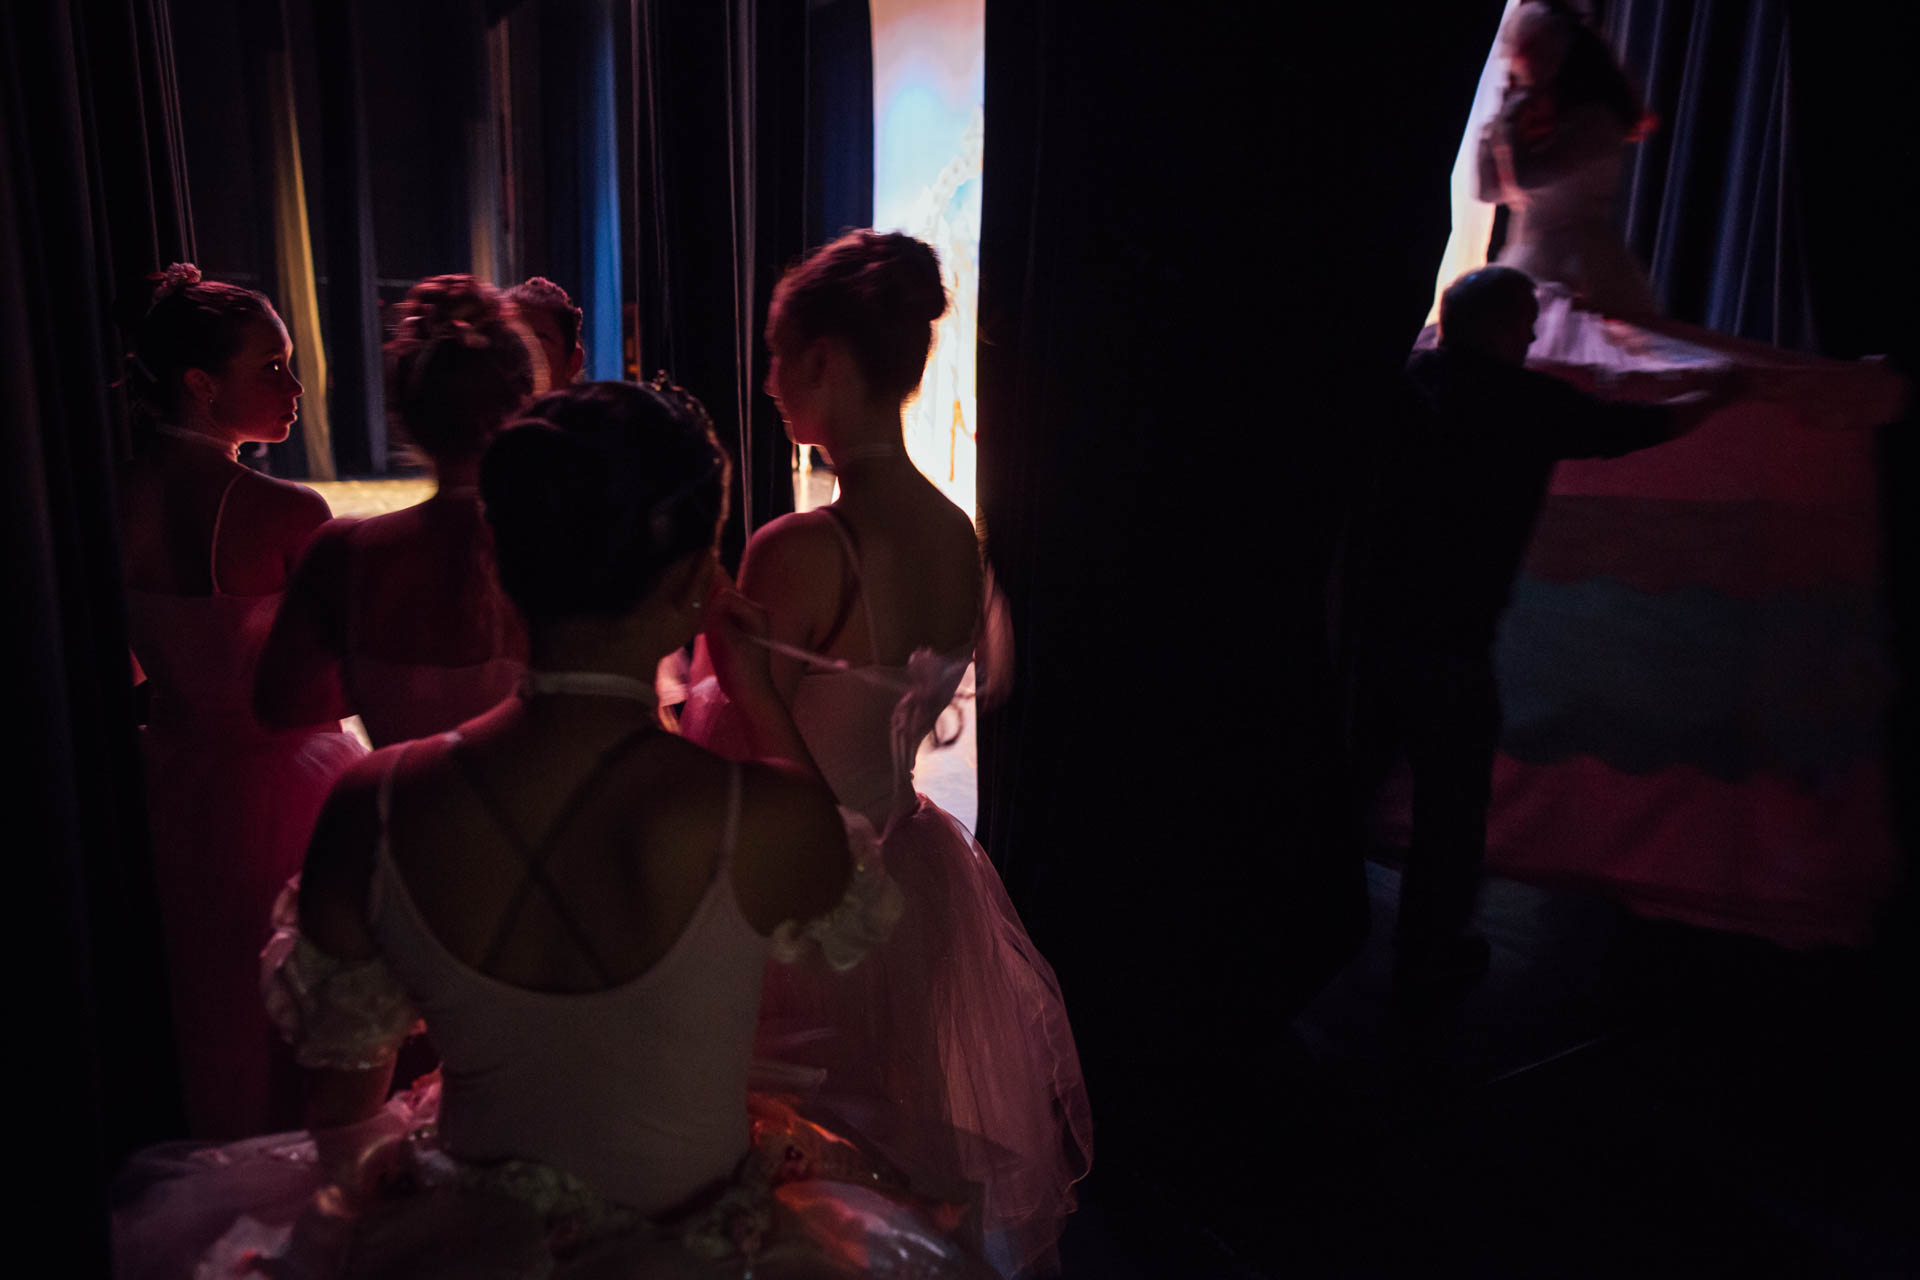 nutcracker-ballet-side-stage-action-6063